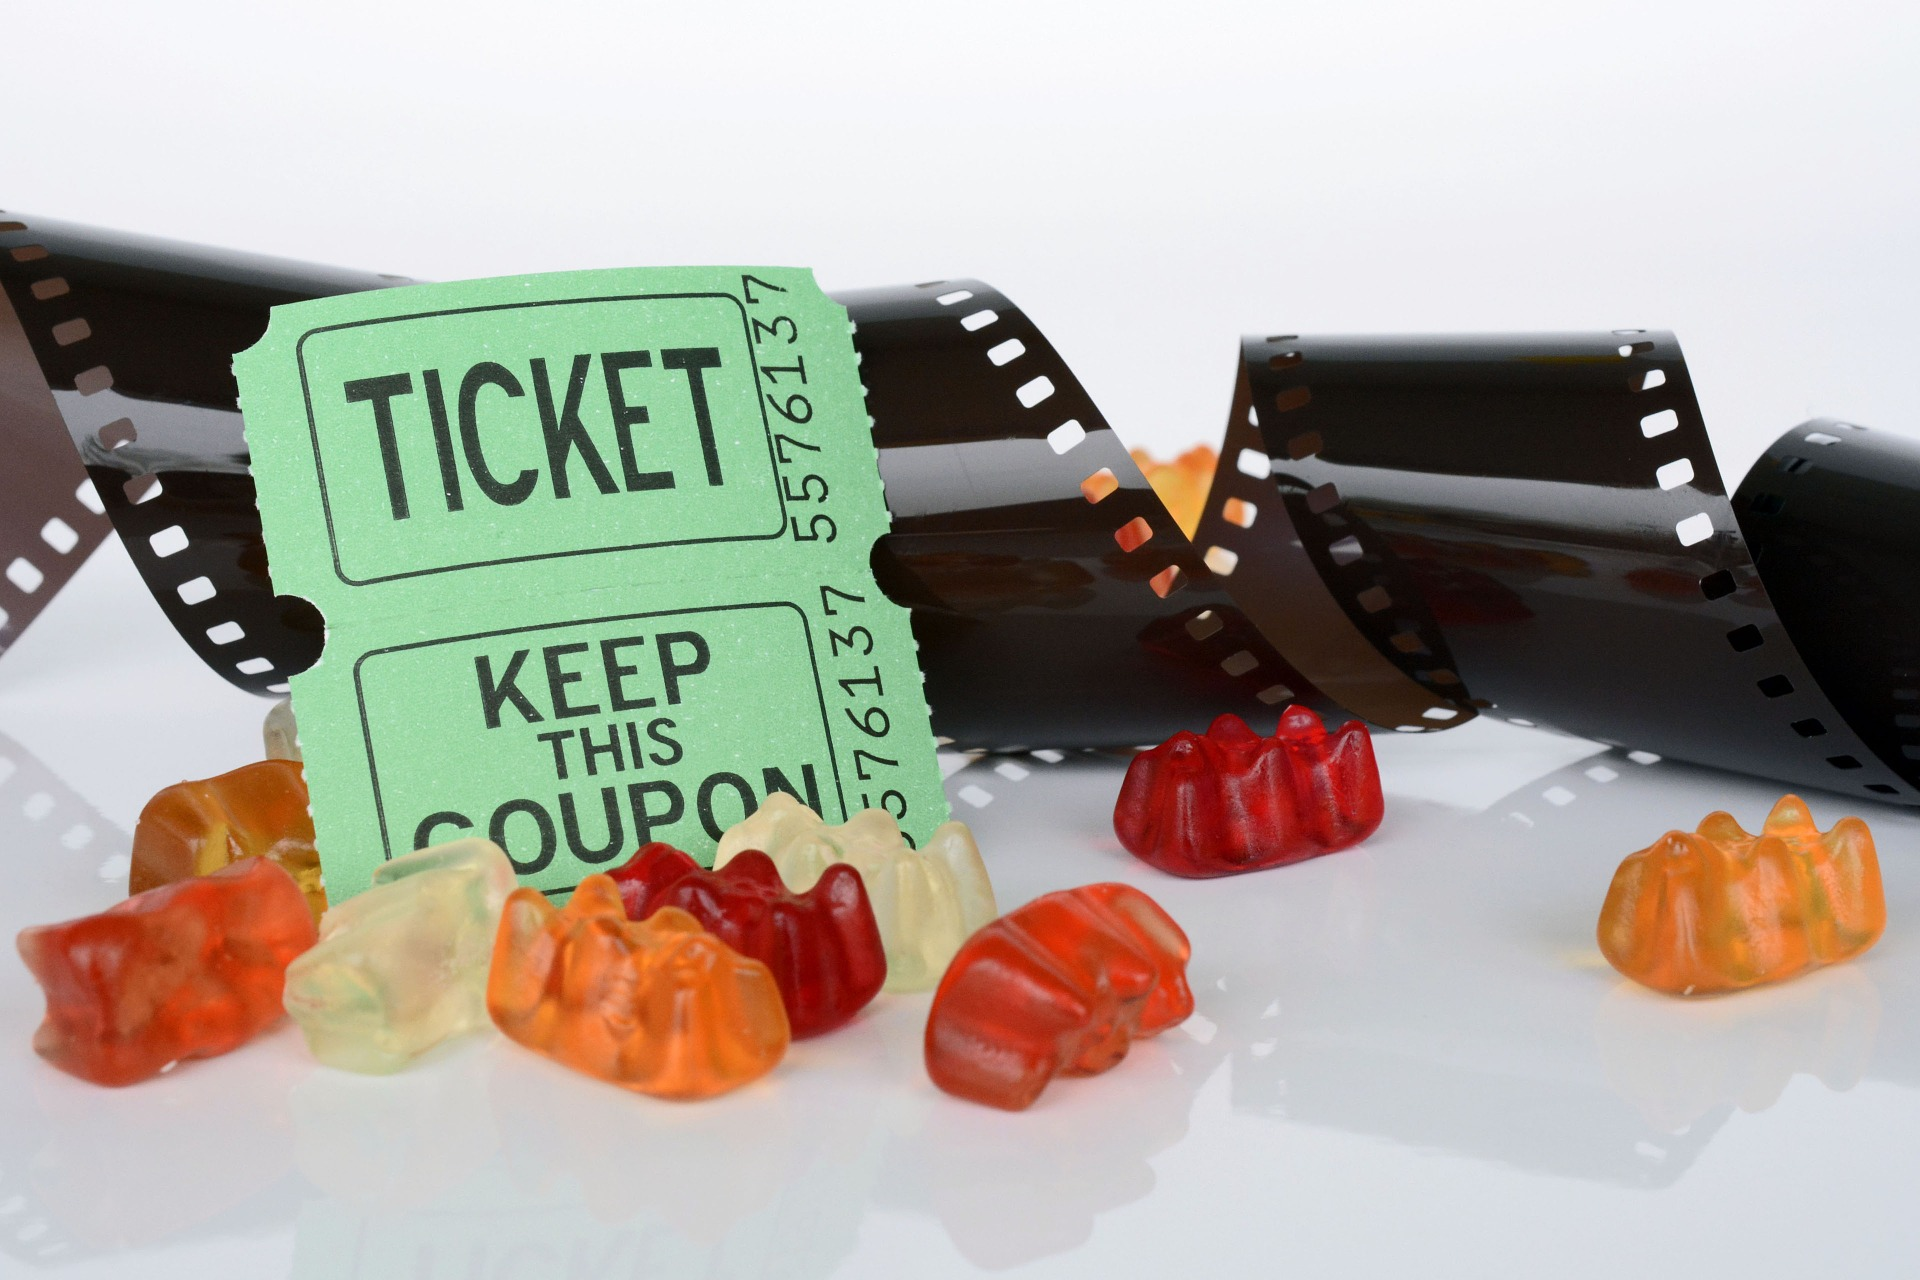 Film roll, ticket and gummy bears